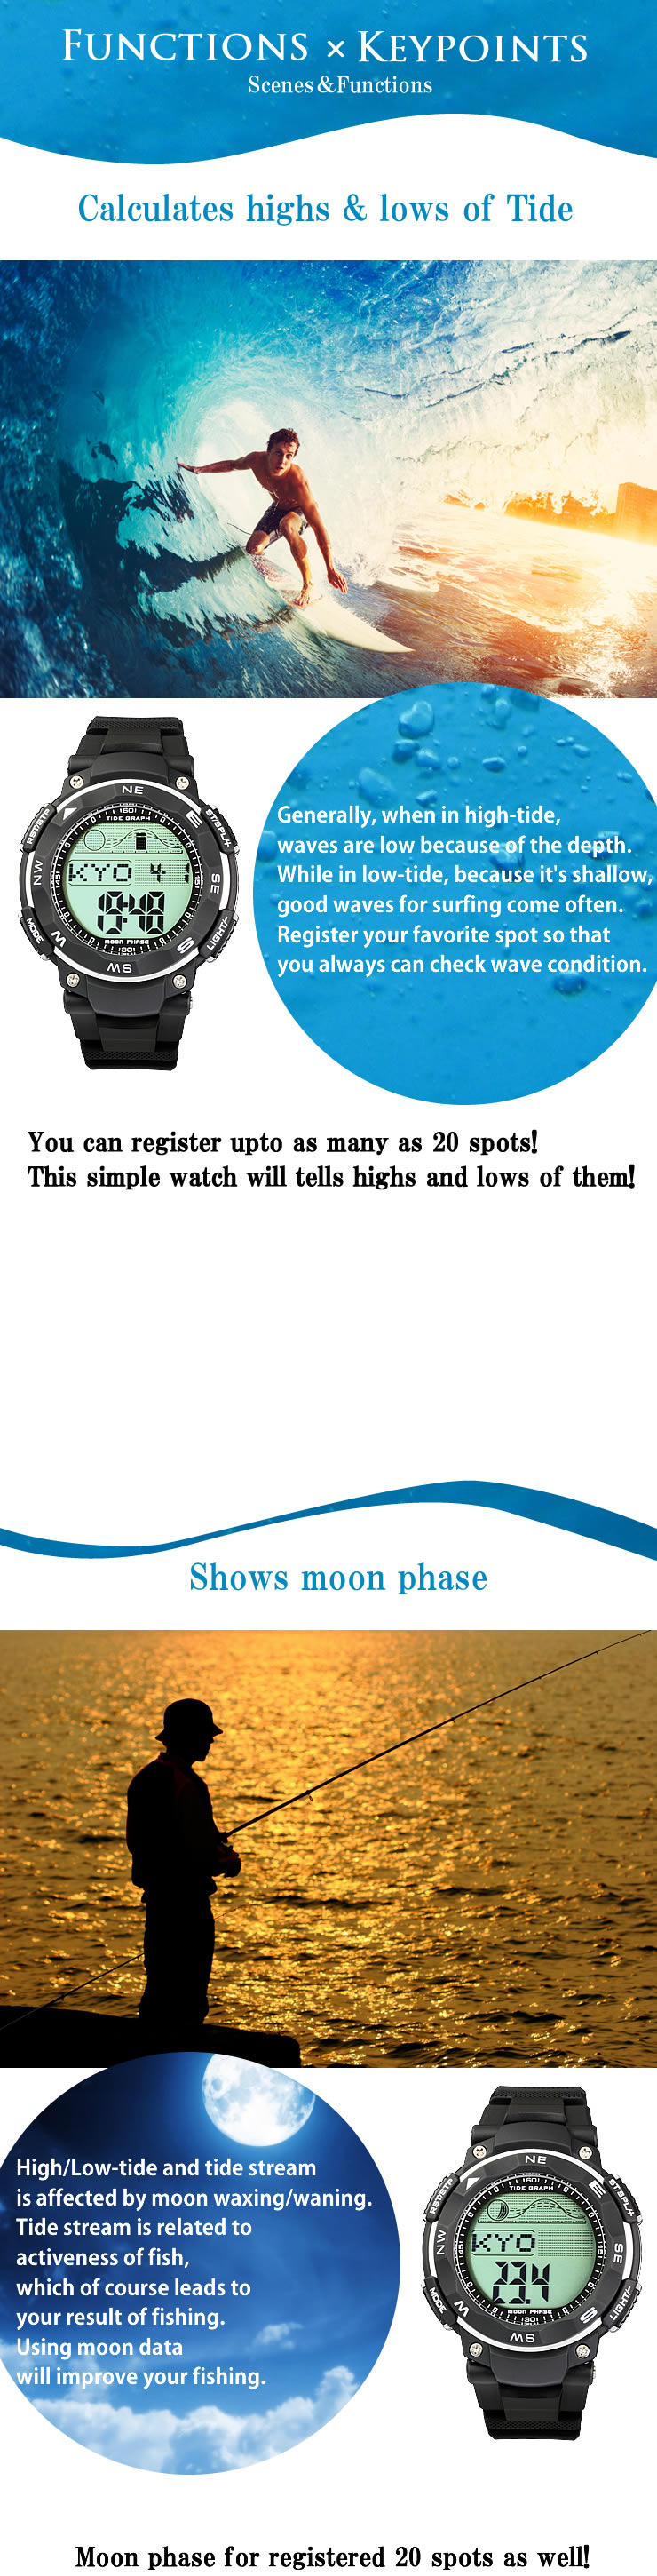 Moon tide chart gallery free any chart examples moon tide chart gallery free any chart examples moon tide chart images free any chart examples nvjuhfo Images